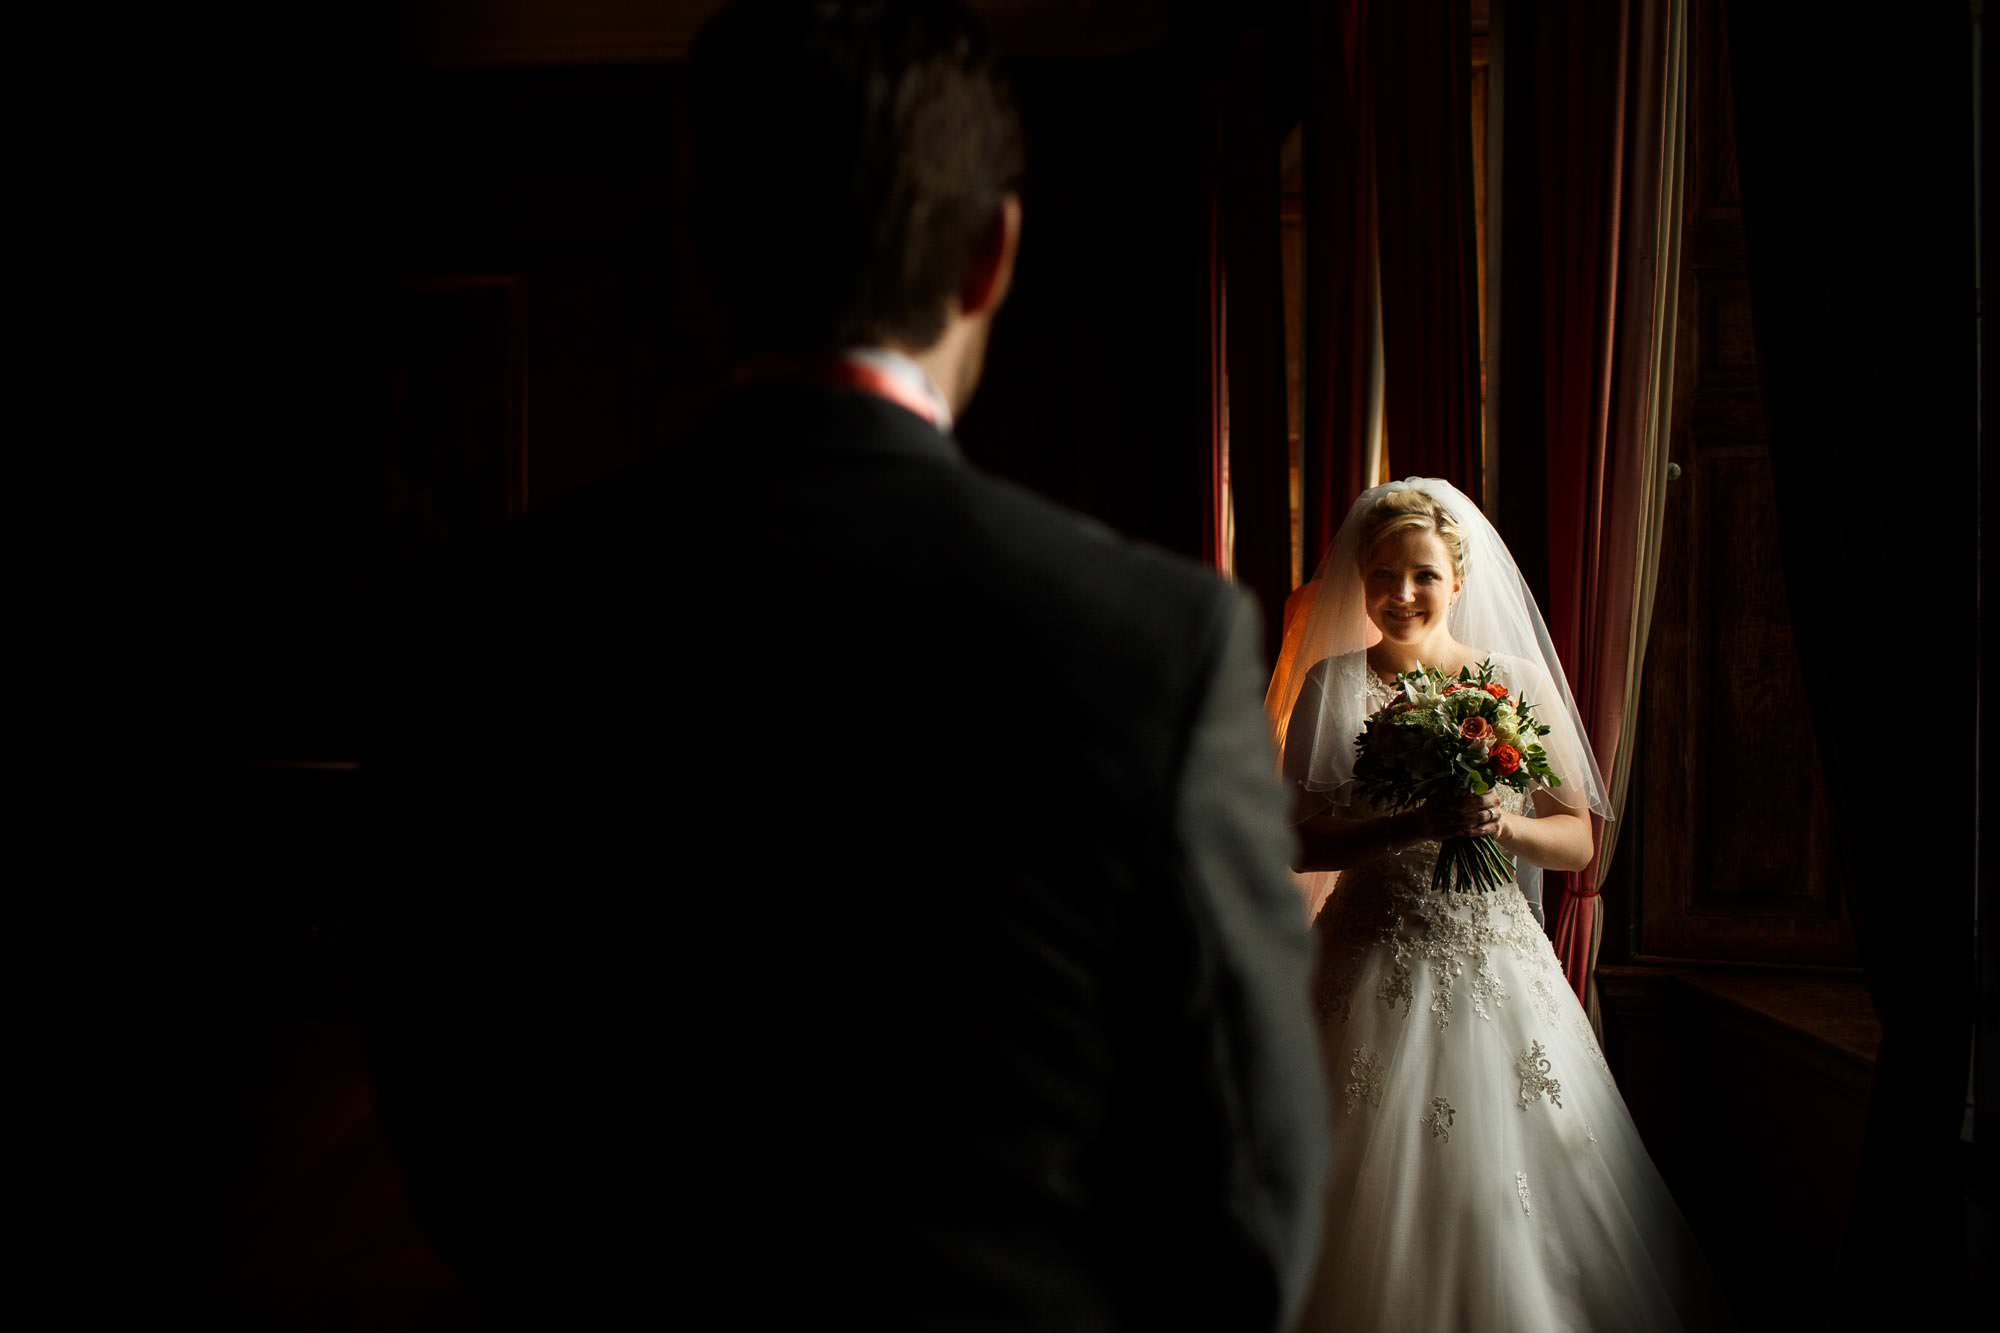 Bride and Groom facing one another in the window light at Adlington Hall and Gardens